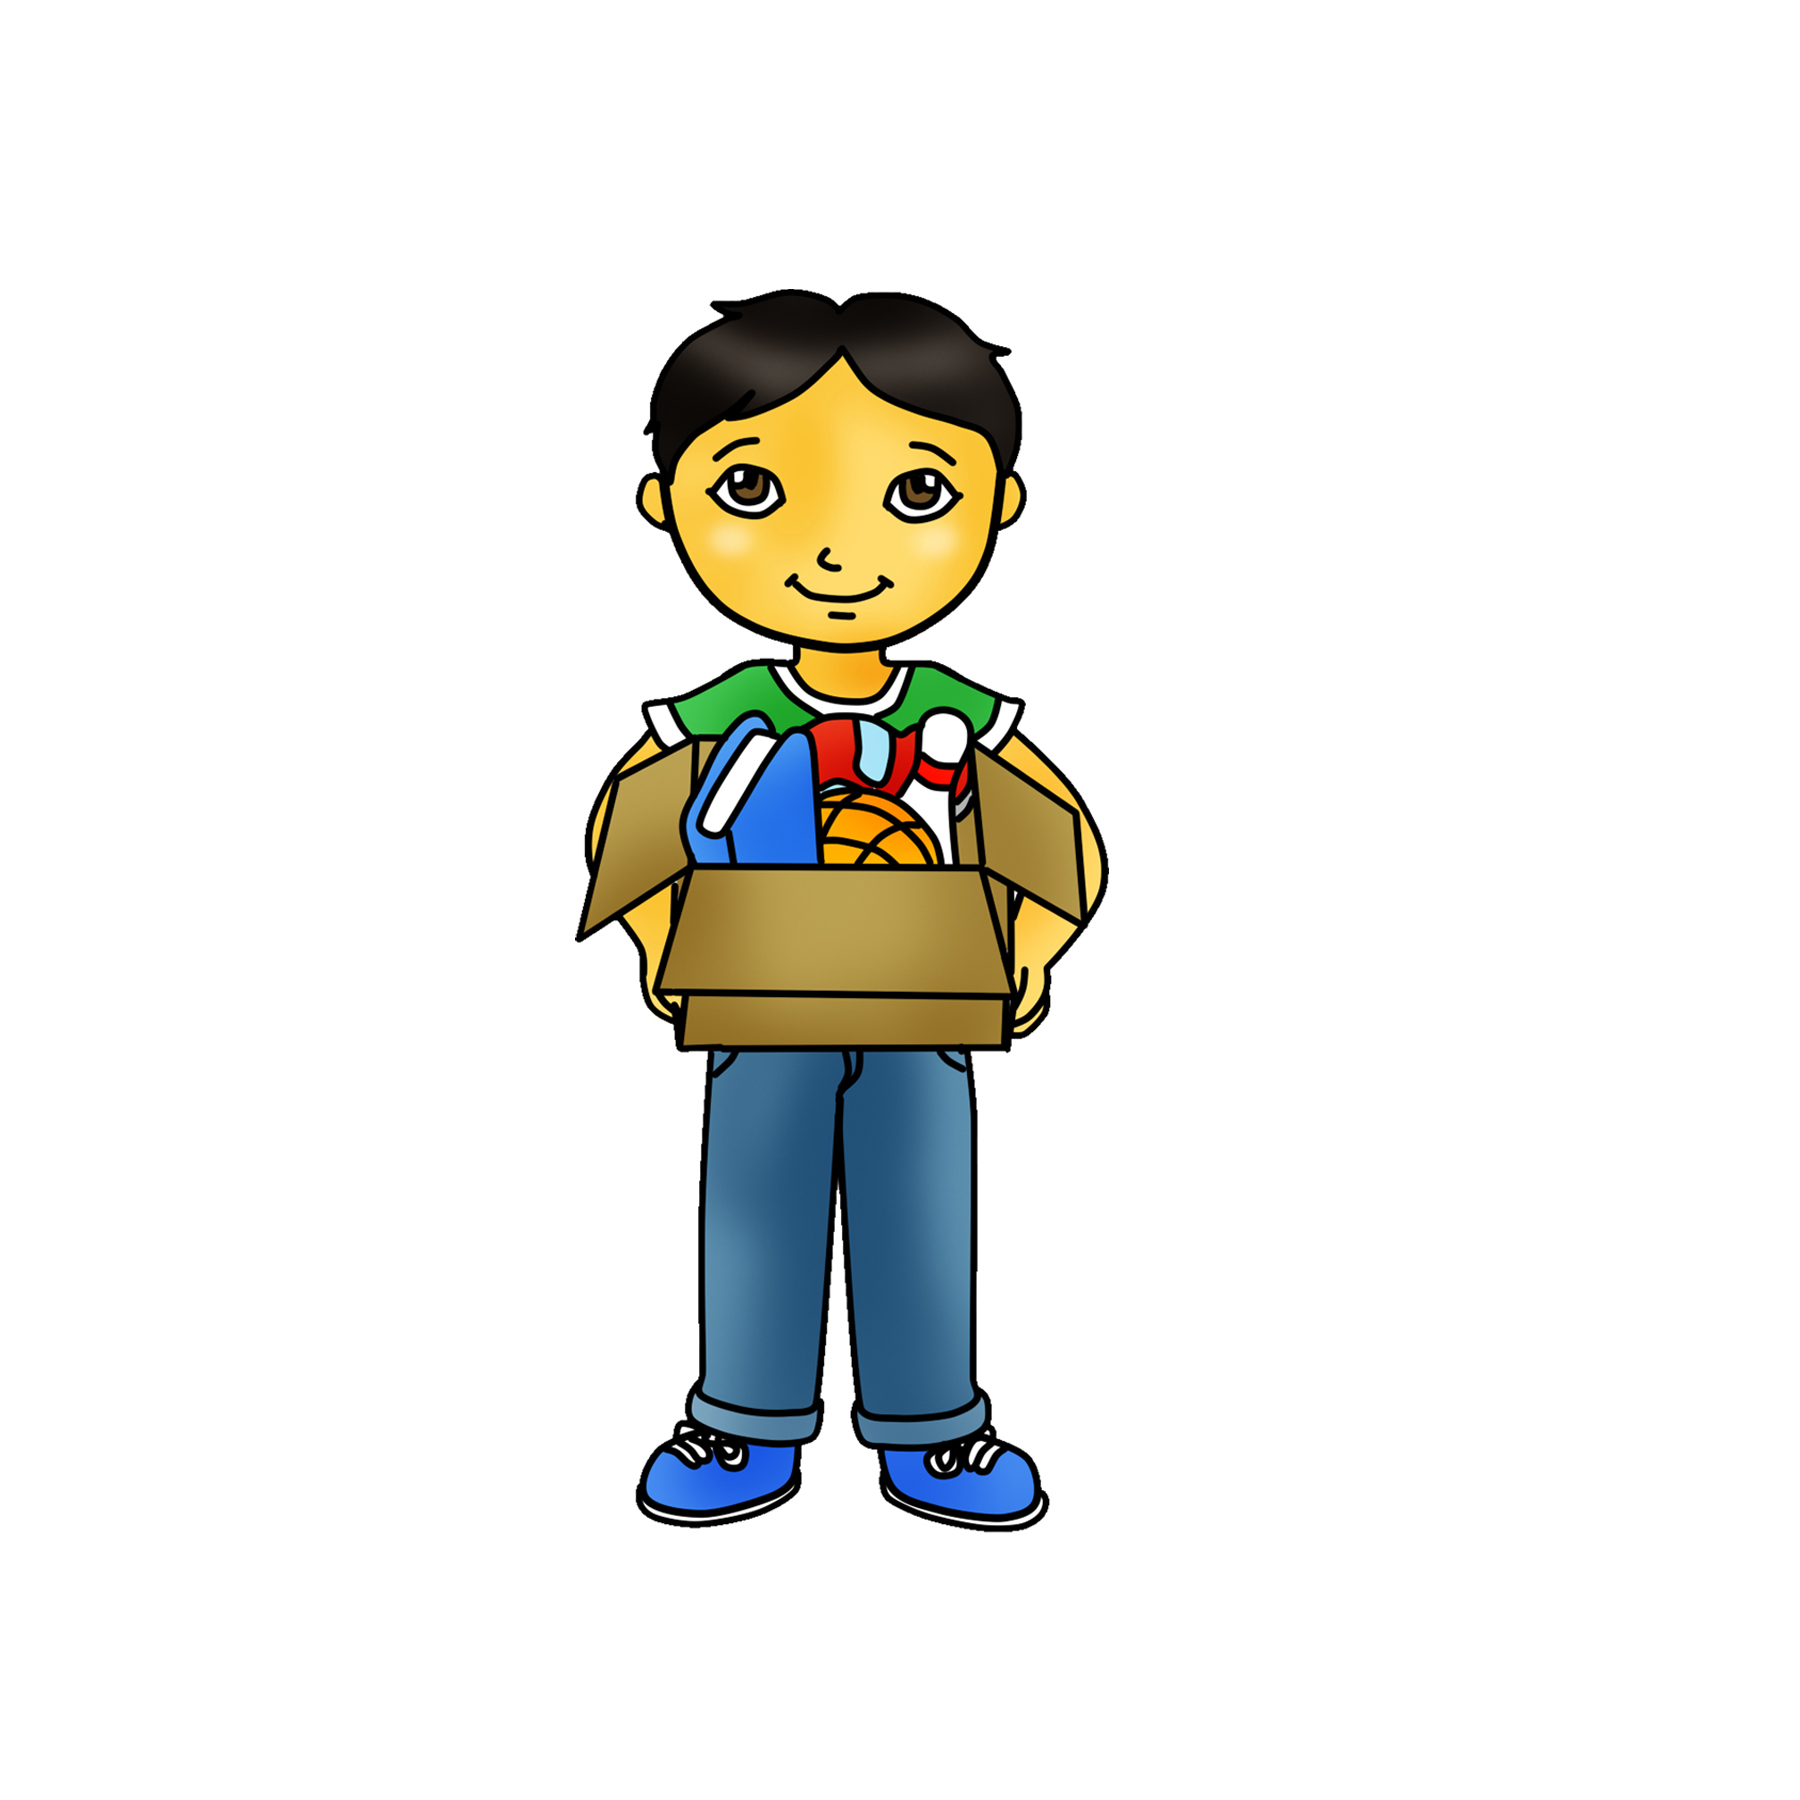 Worry clipart boy. Kid holding box graphic